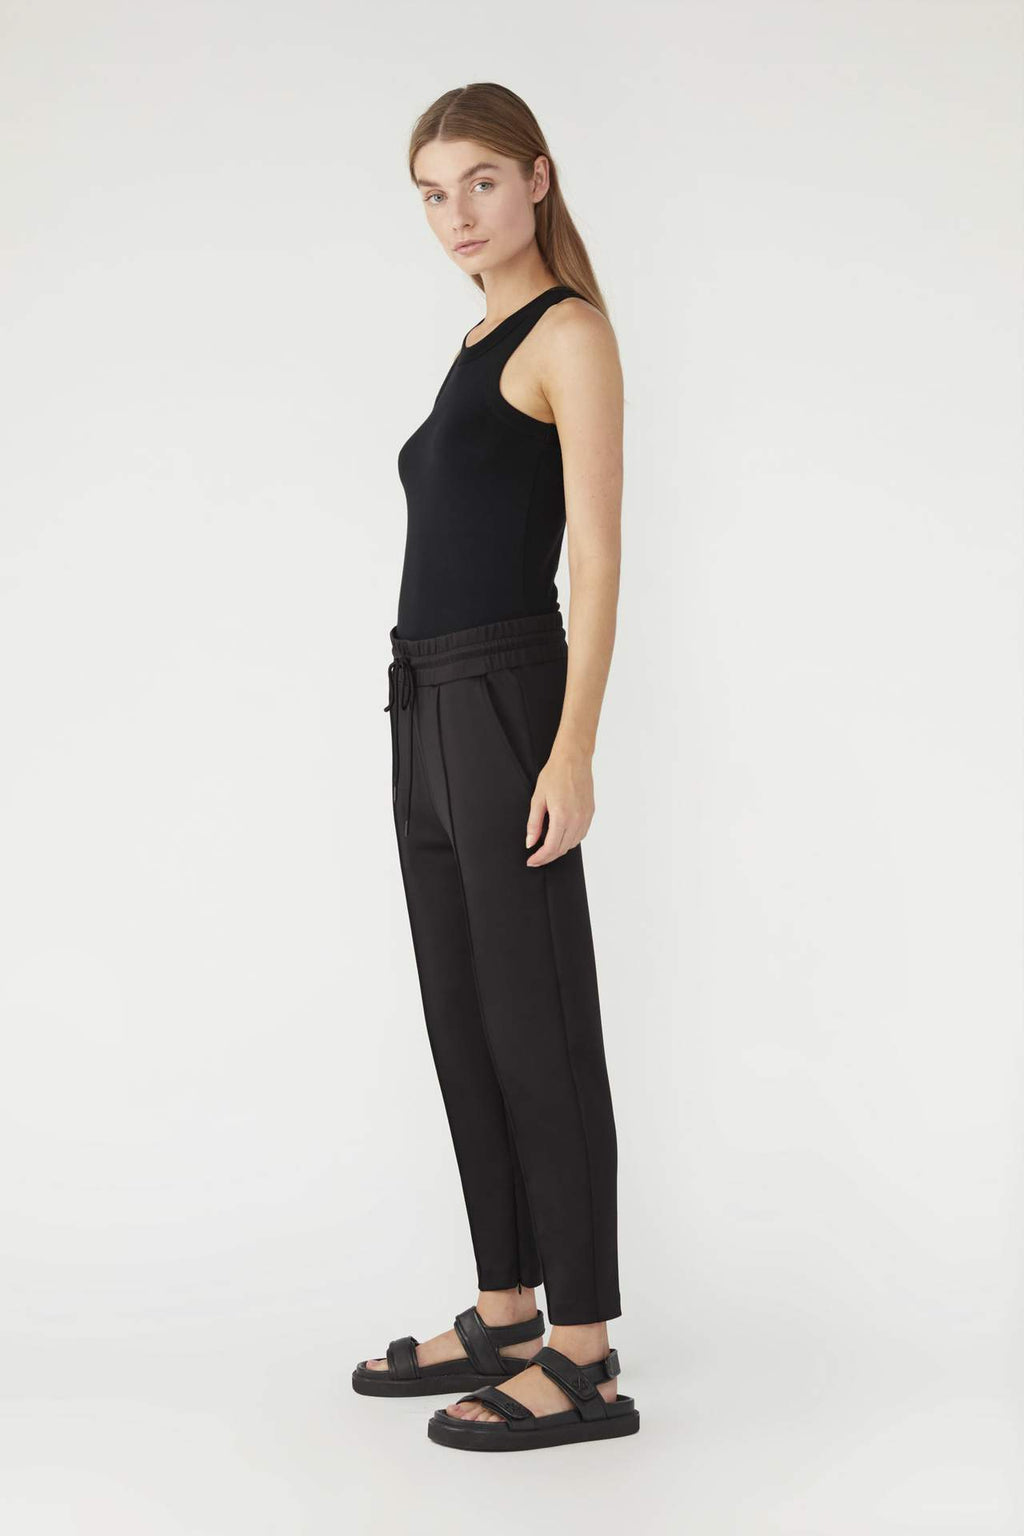 Camilla And Marc / Roan Pant / Black